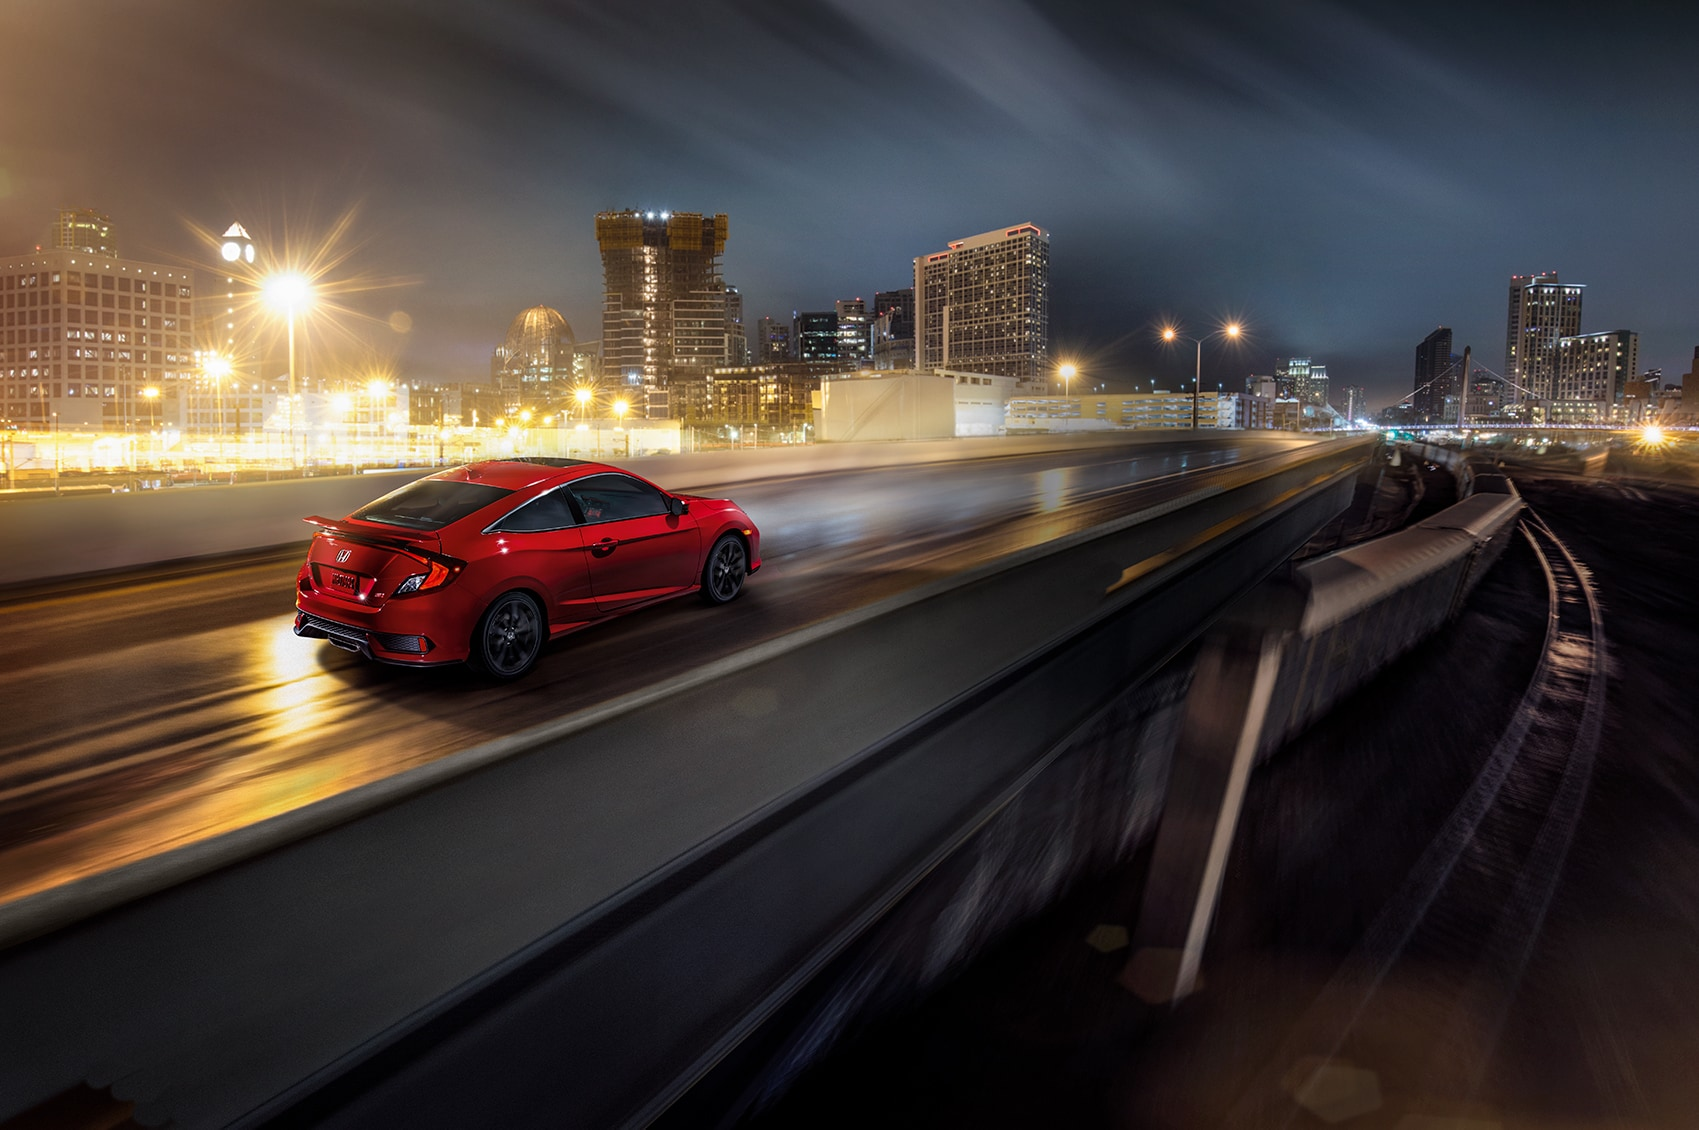 Boch Honda West is a Family Owned Dealership near Boxborough, MA | 2020 Honda Civic driving on highway at night